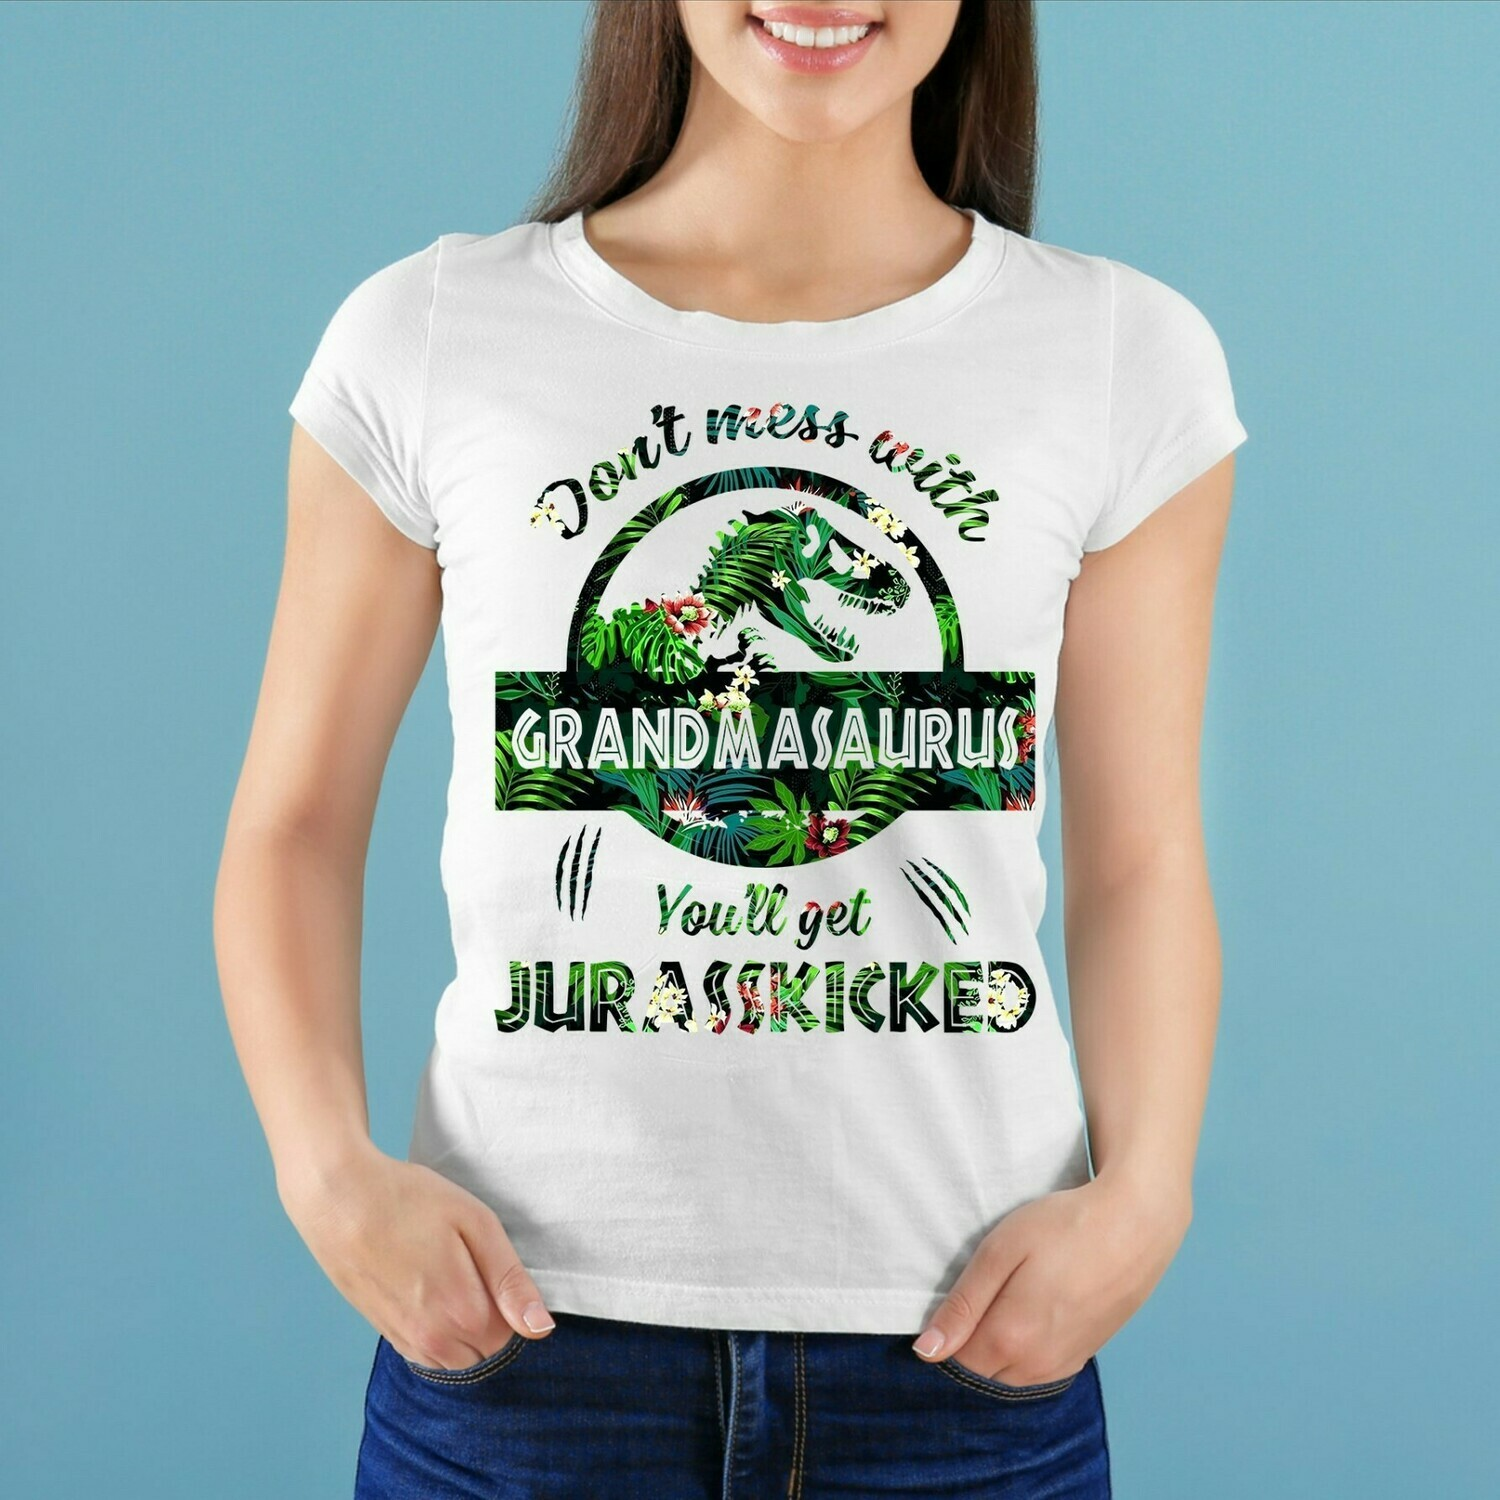 Don't mess with grandmasaurus you'll get jurasskicked mother's day shirt T-Shirt Hoodie Sweatshirt Sweater Tee Kids Youth Gifts Jolly Family Gifts